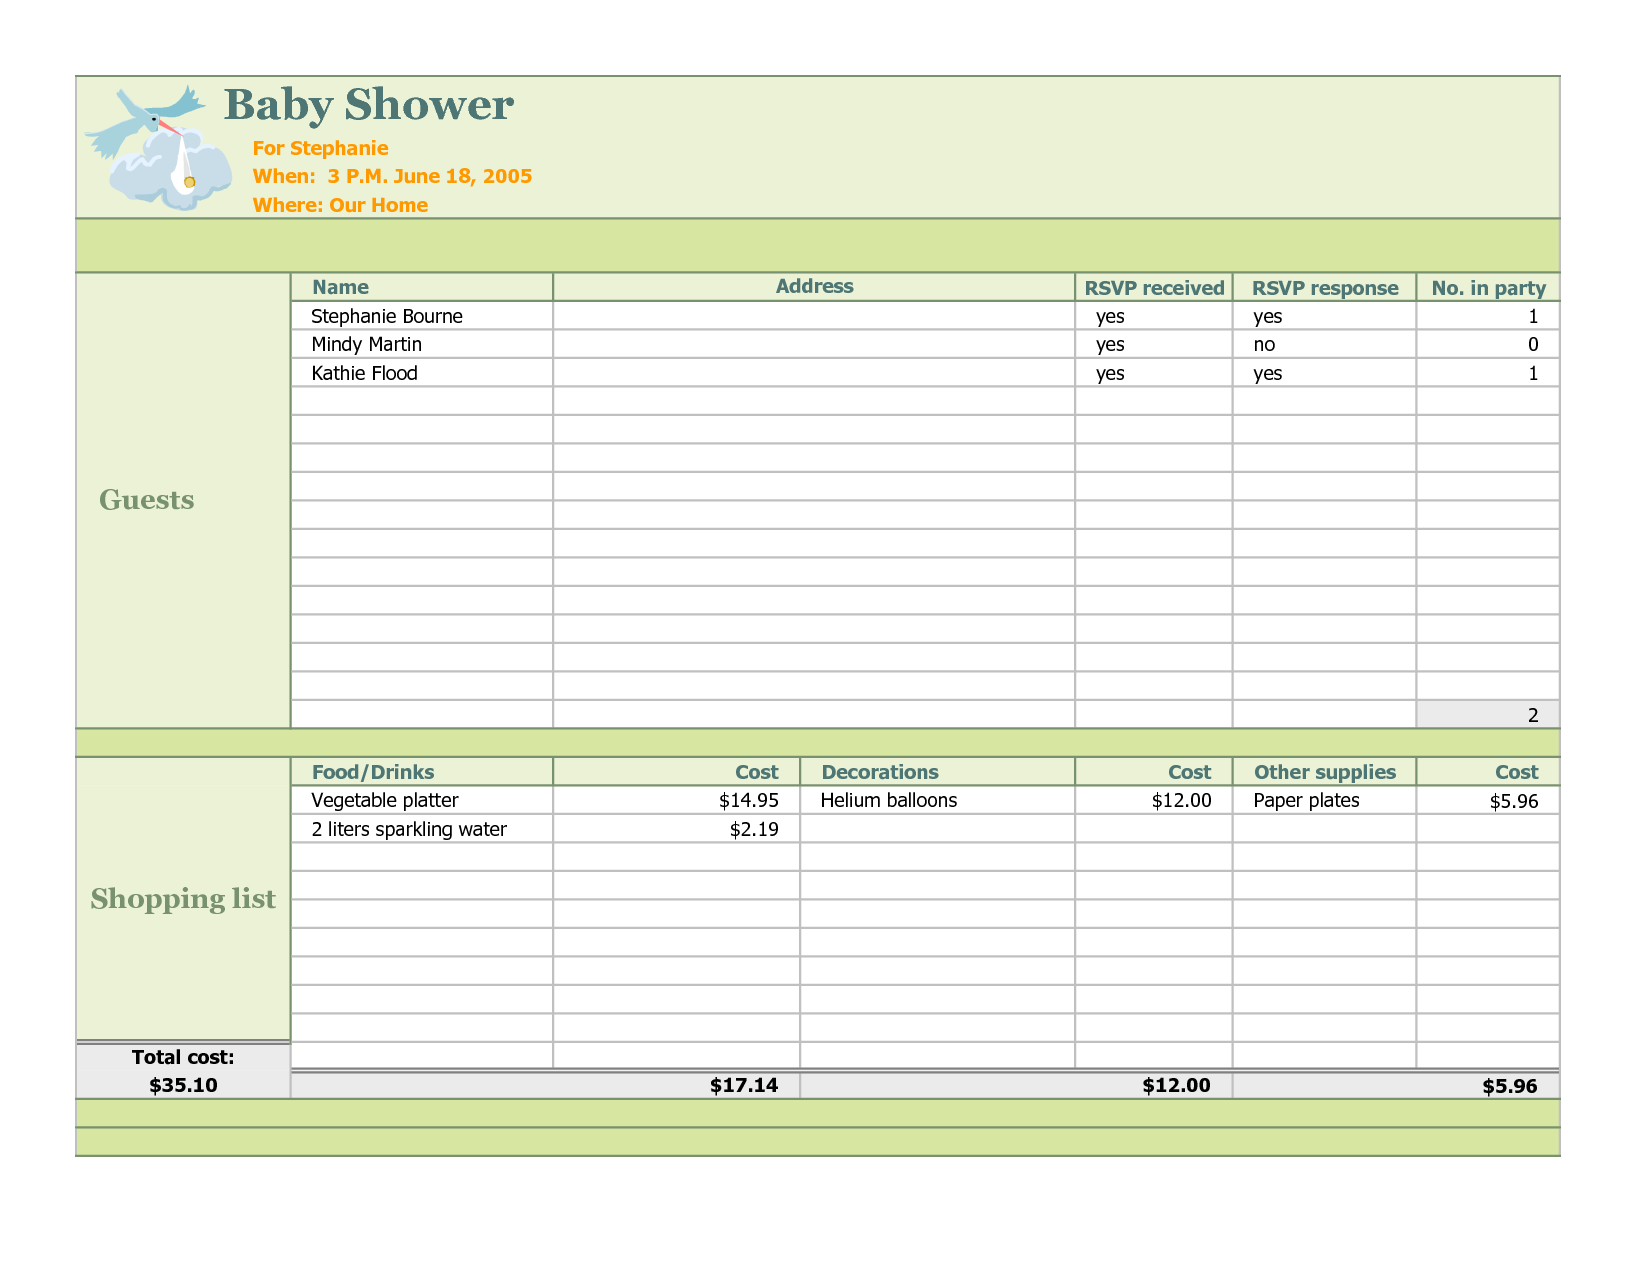 Baby Shower Planning Checklist | Baby Shower Planner Excel Template